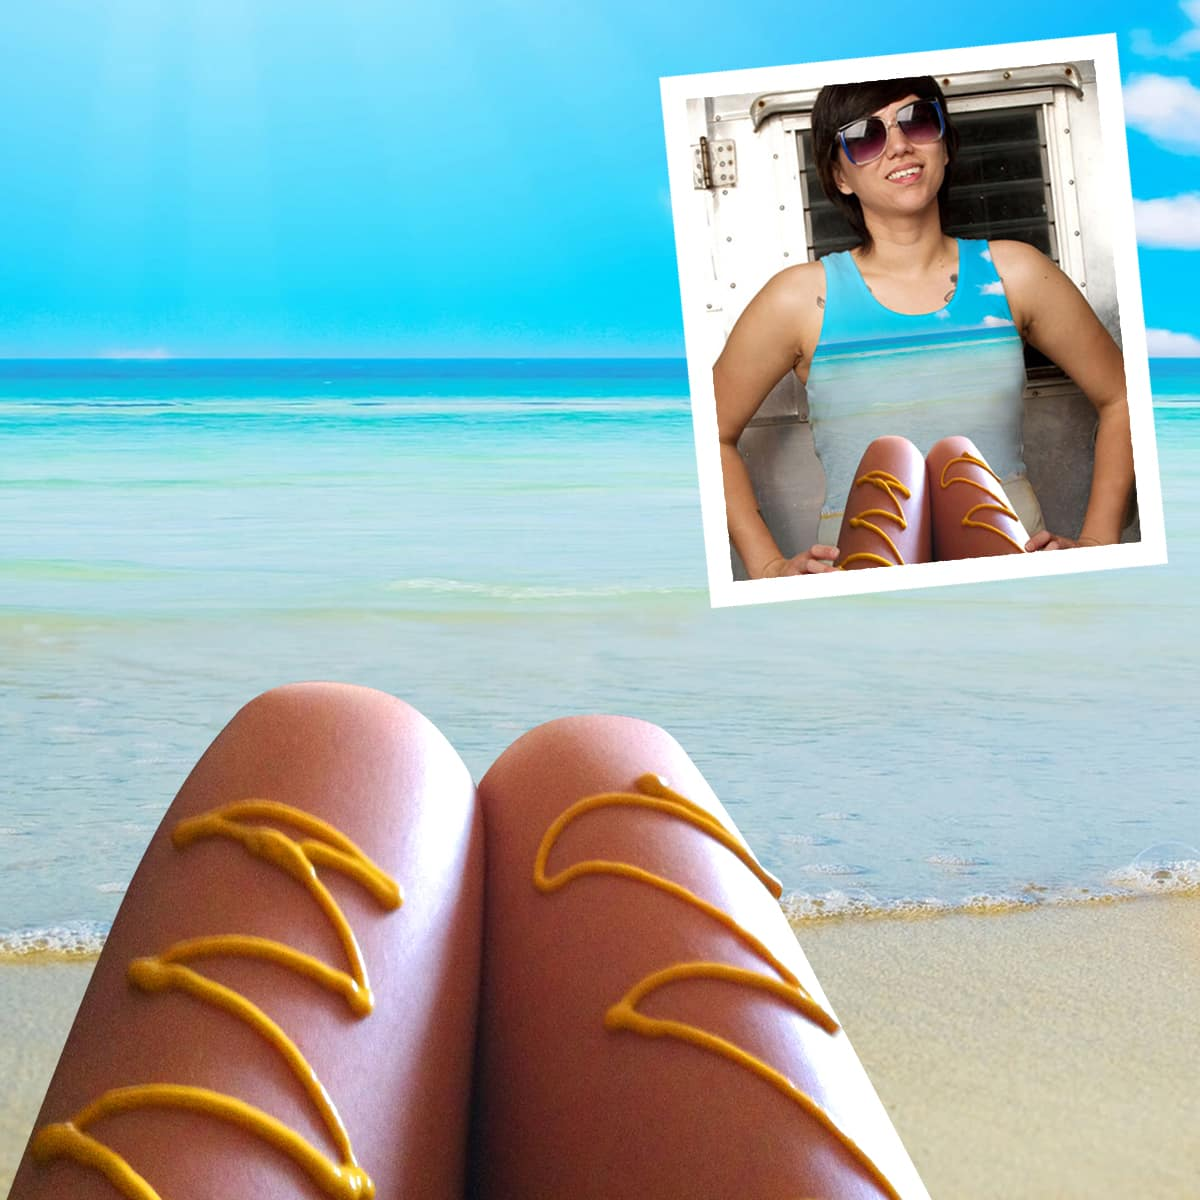 Collection Hotdogs Or Legs Pictures - Newyorkfashion